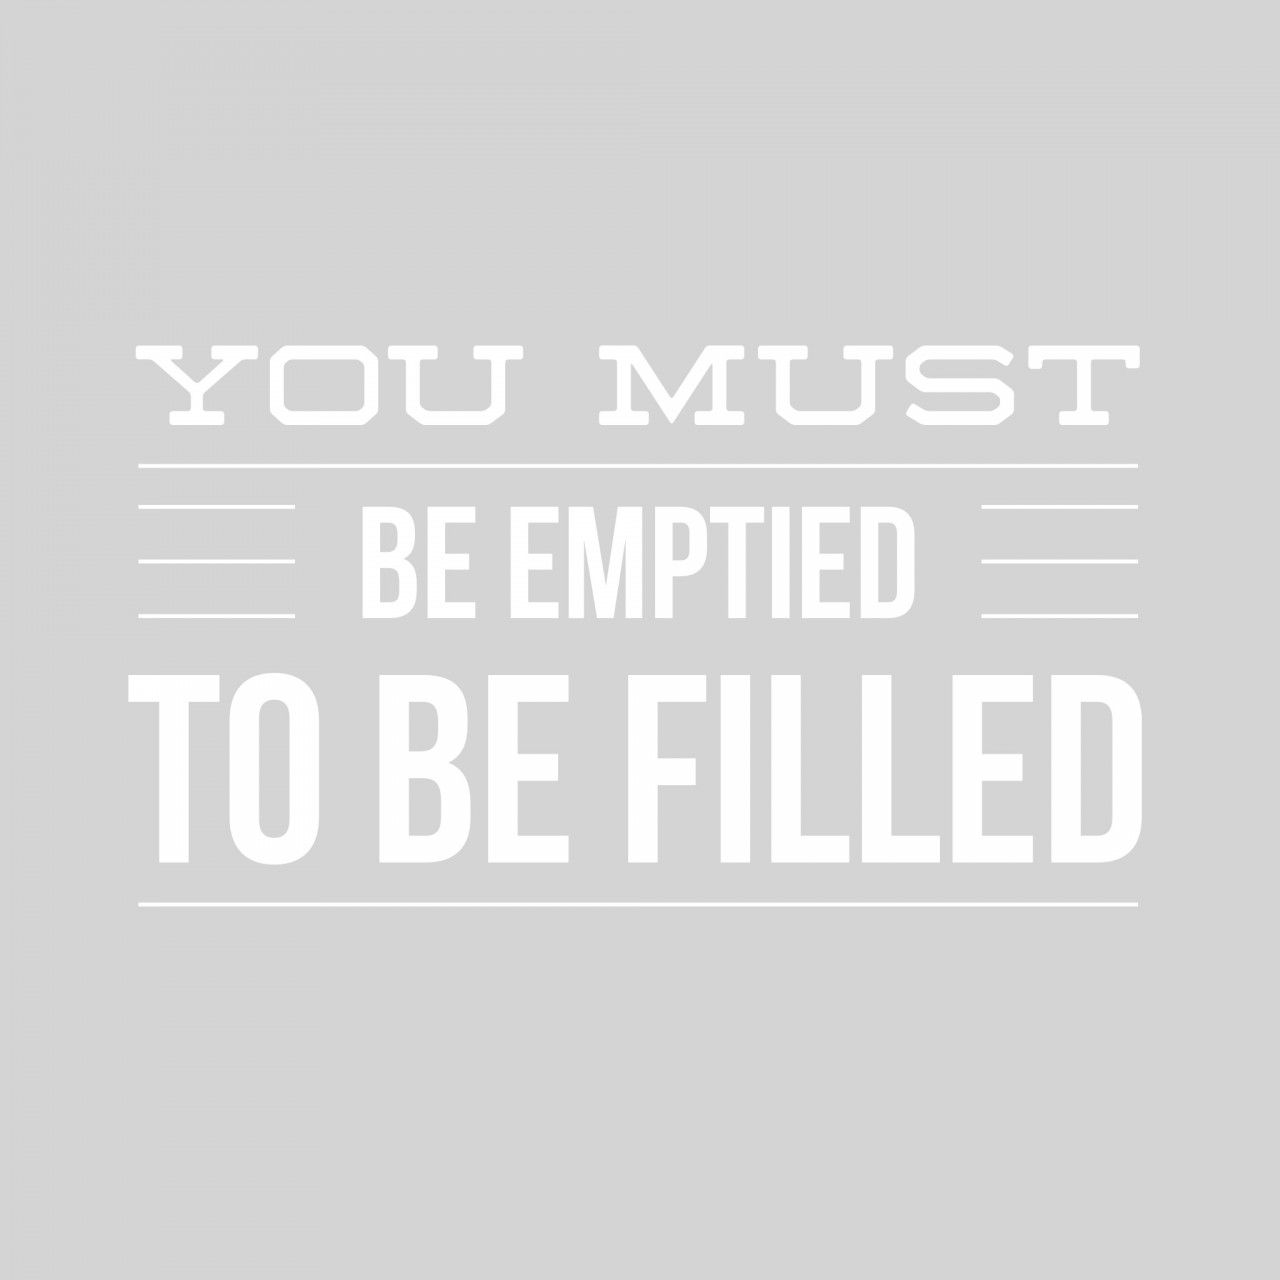 Be Empty To Be Filled